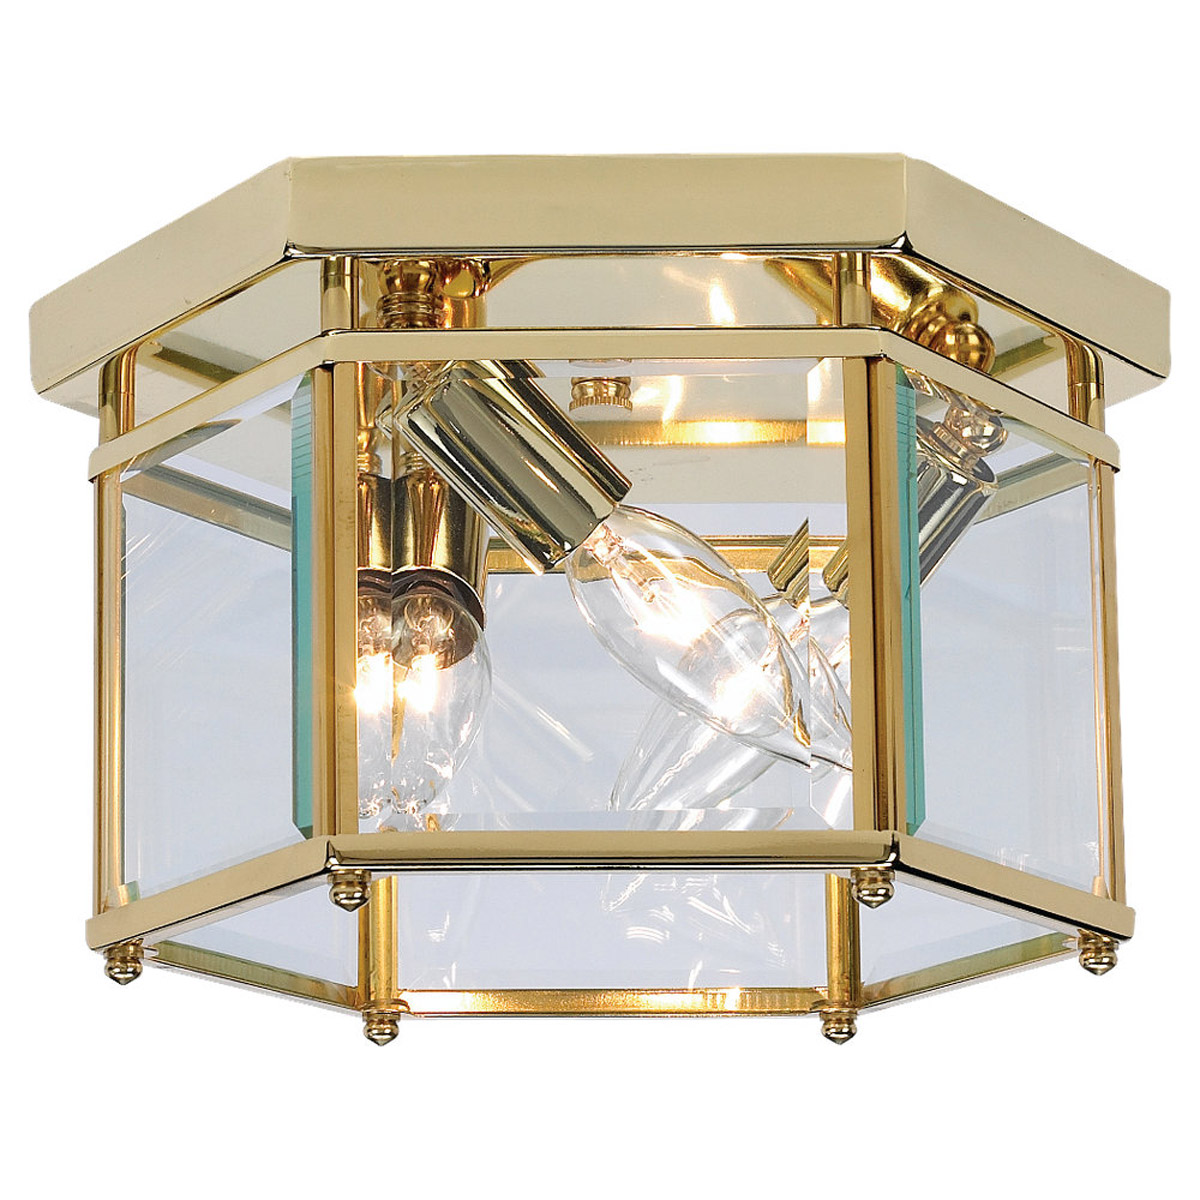 Sea Gull Lighting Bretton 3 Light Flush Mount in Polished Brass 7648-02 photo